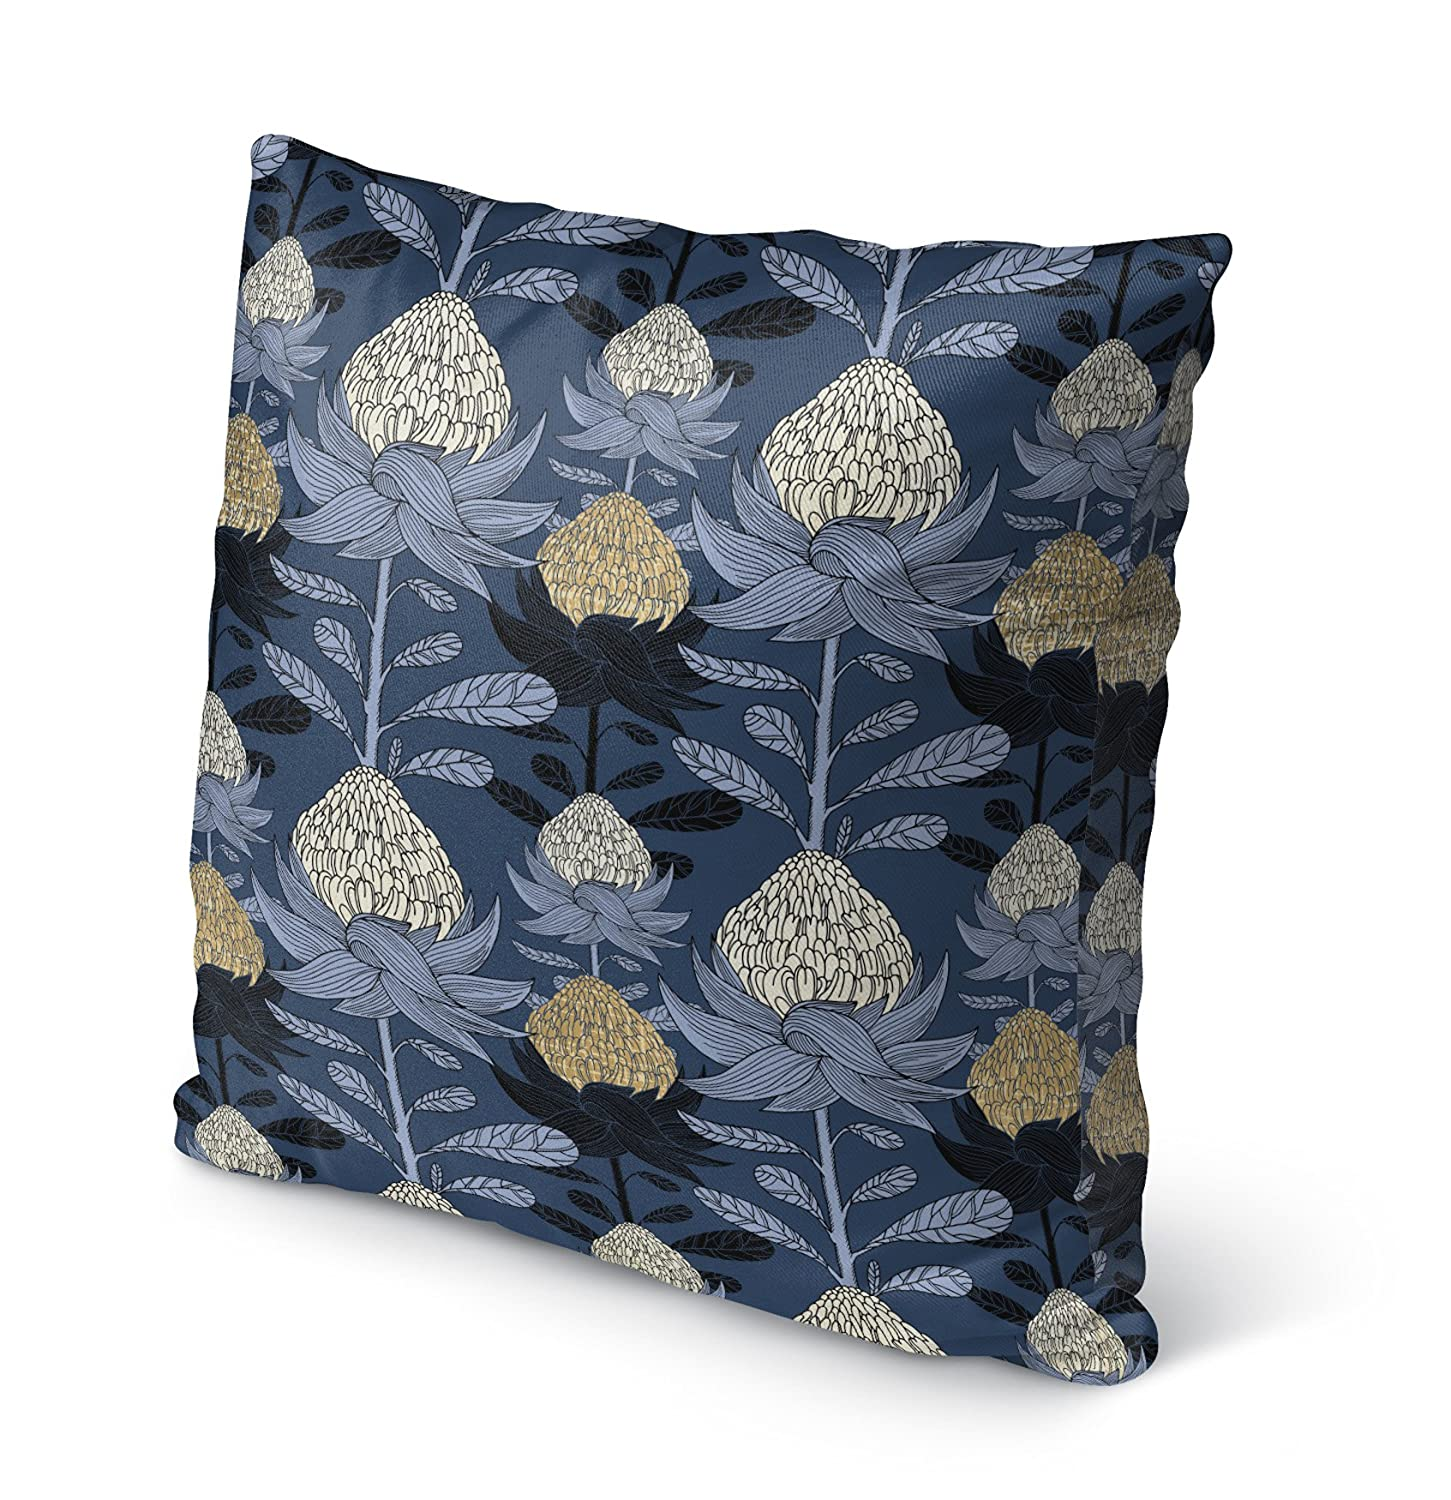 KAVKA Designs Nautical Blossom Indoor-Outdoor Pillow, Blue//Beige - SALTWATER Collection Size: 16X16X6 - TELAVC8142OP16